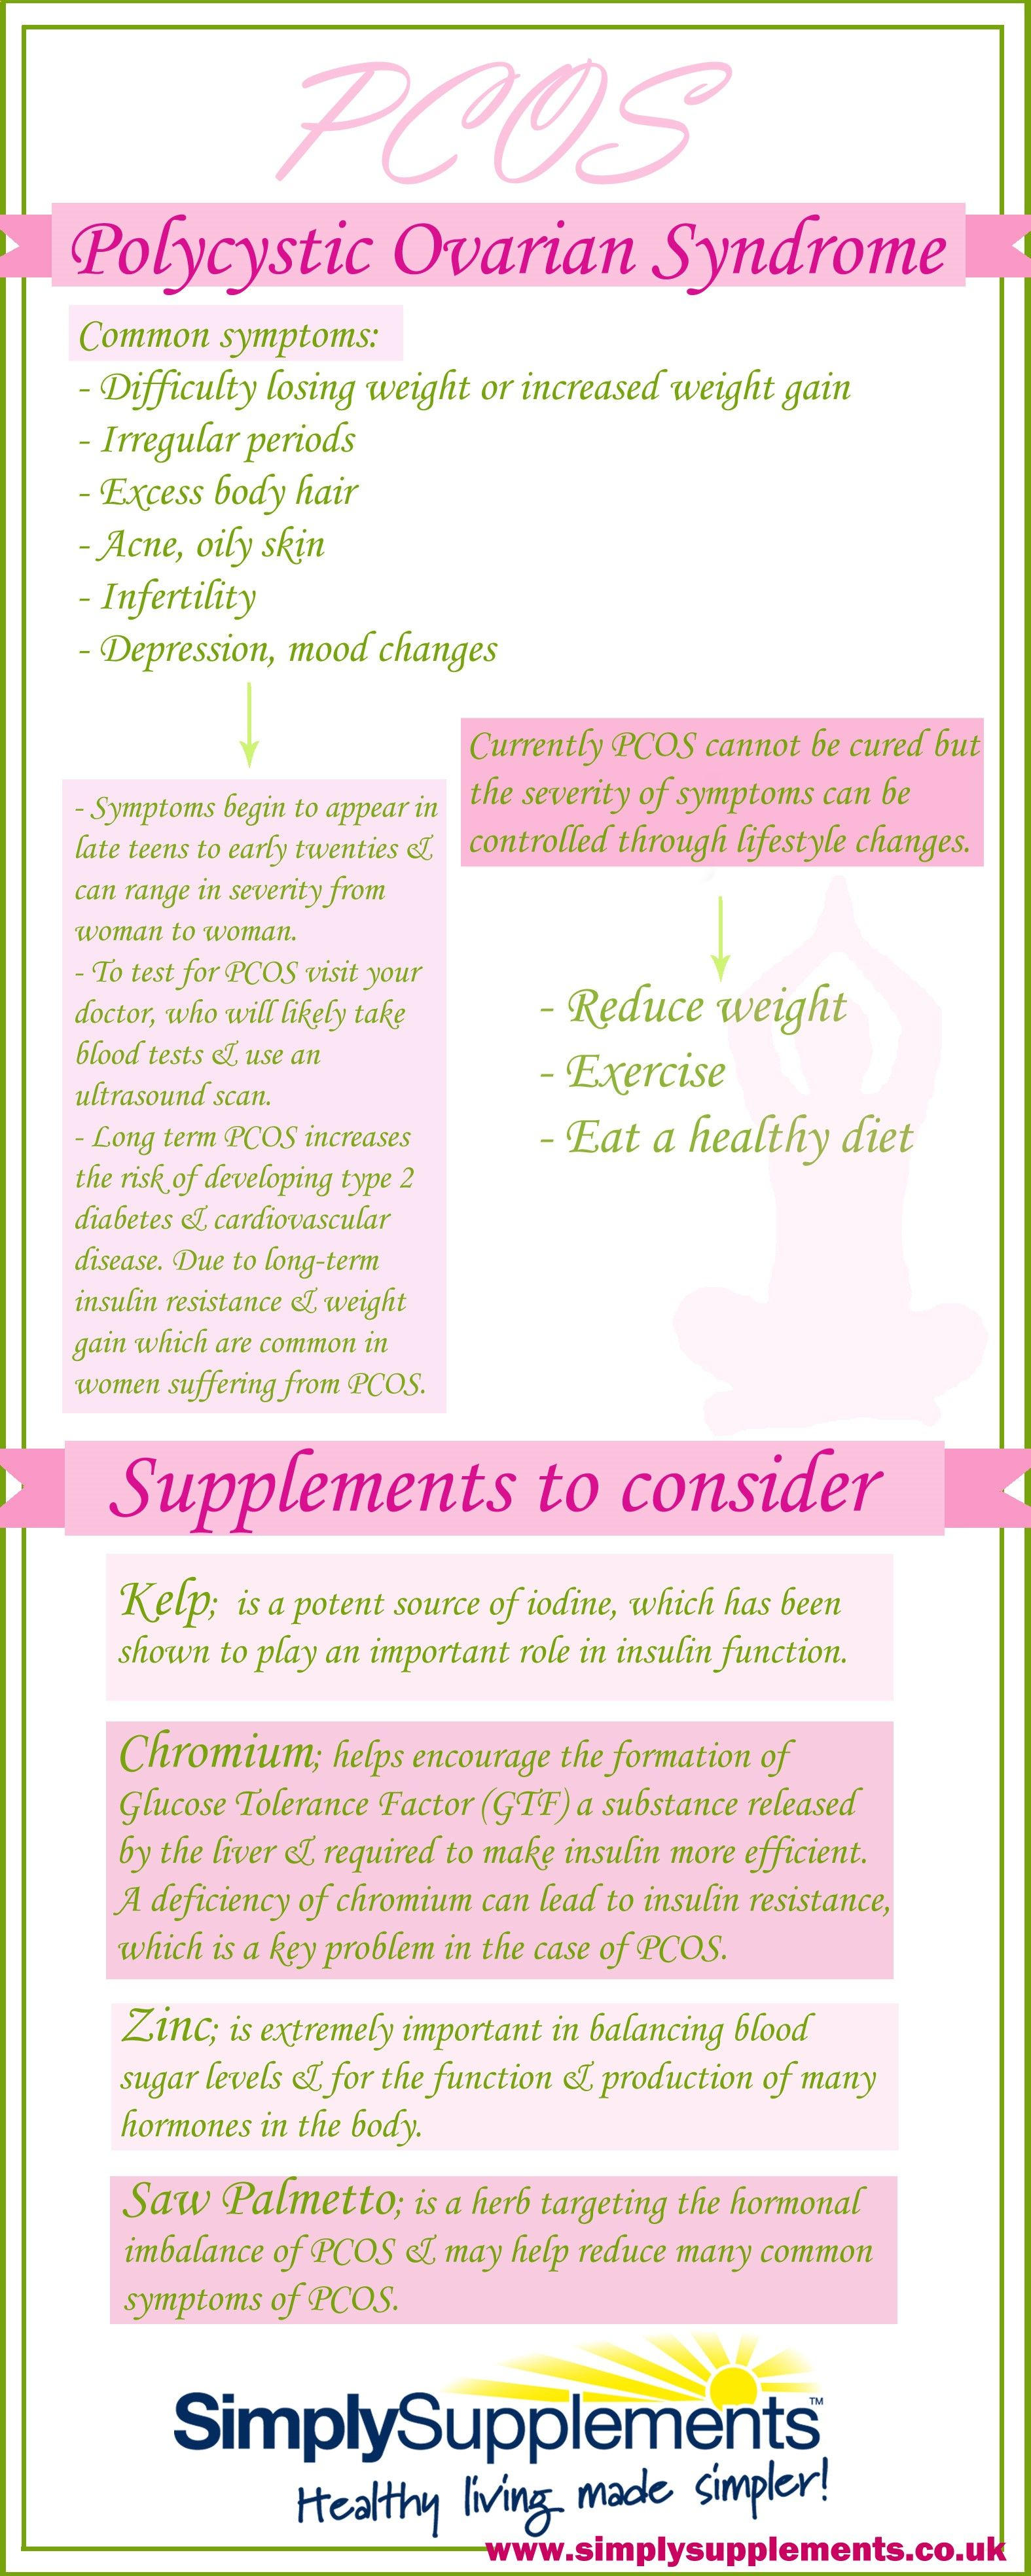 An infographic on symptoms and supplements for PCOS  100